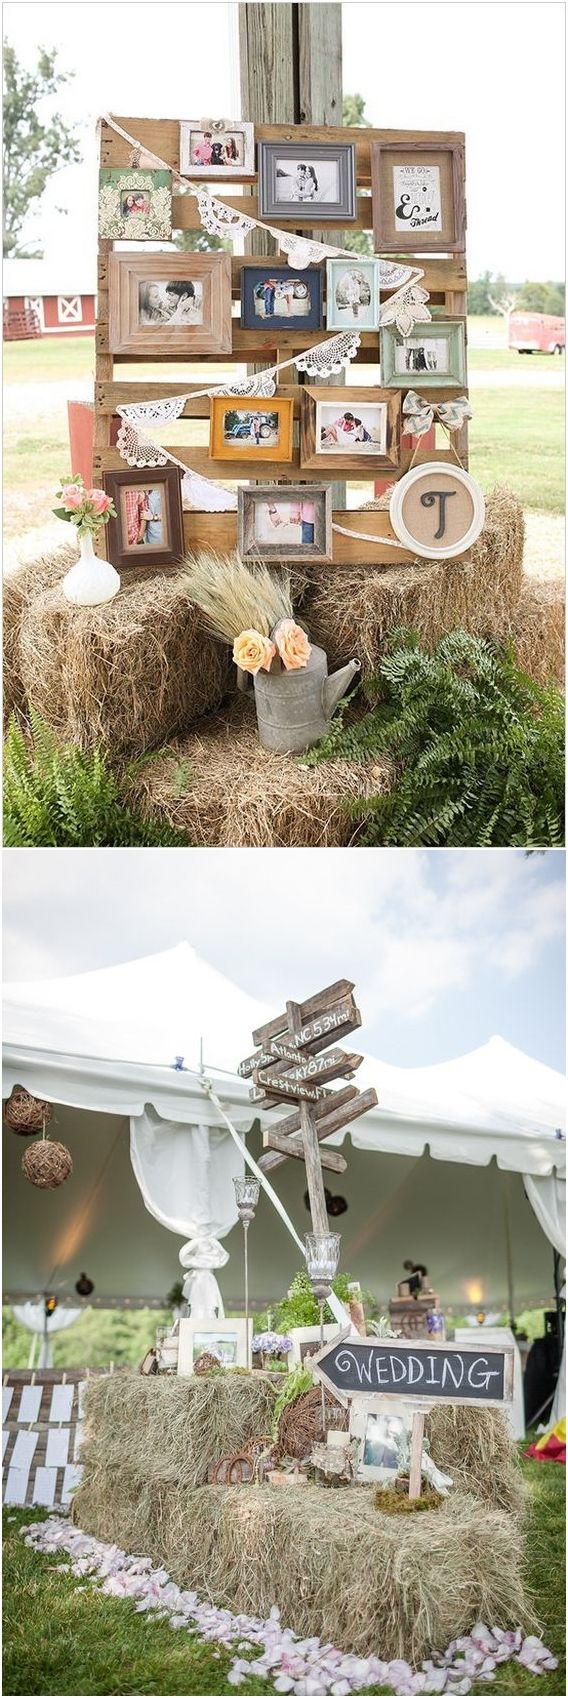 Delightful 25 Gorgeous Country Rustic Wedding Ideas For Your Big Day